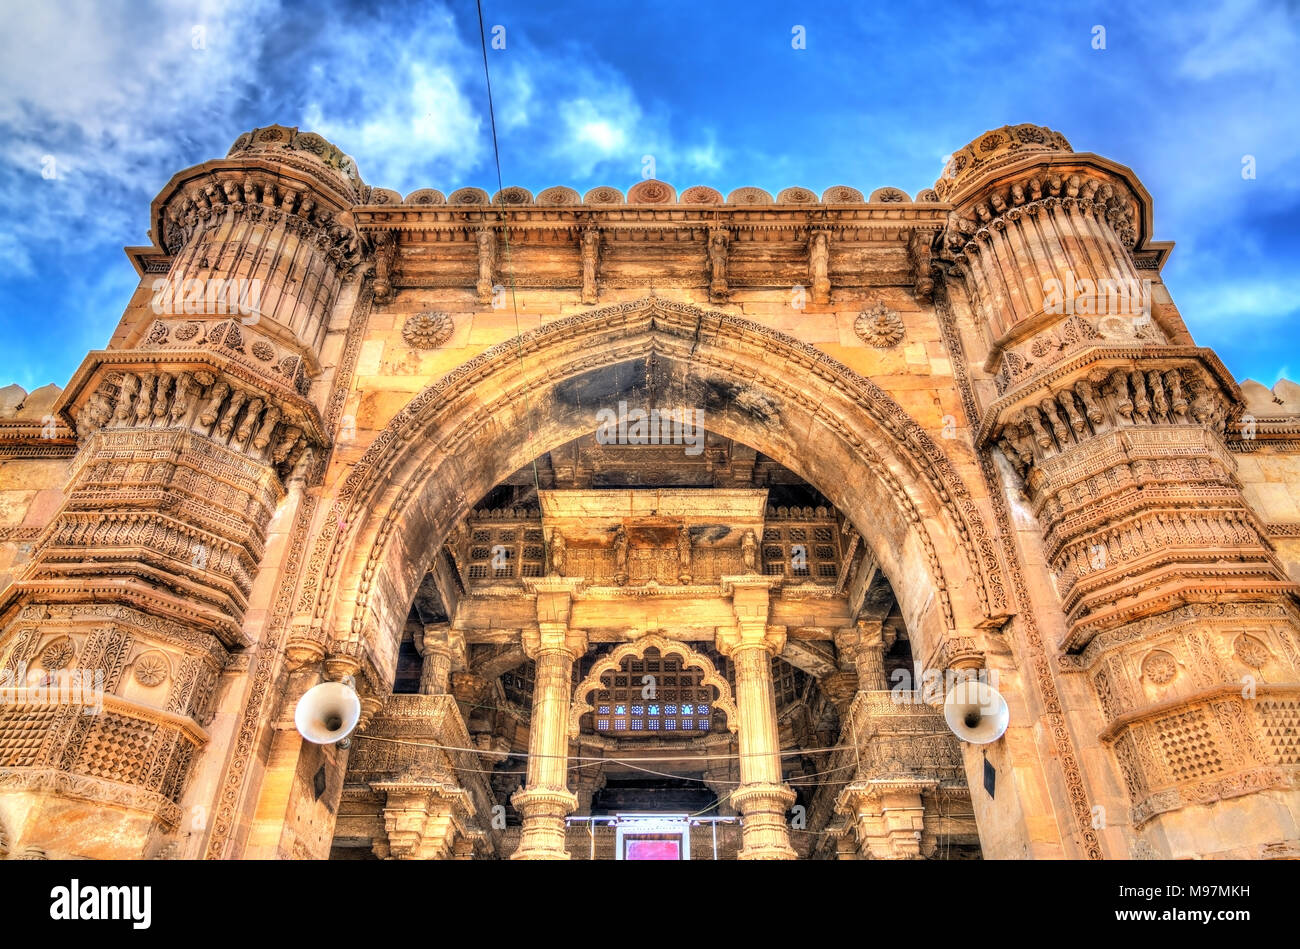 Jama Mosque, the most splendid mosque of Ahmedabad - Gujarat State of India - Stock Image